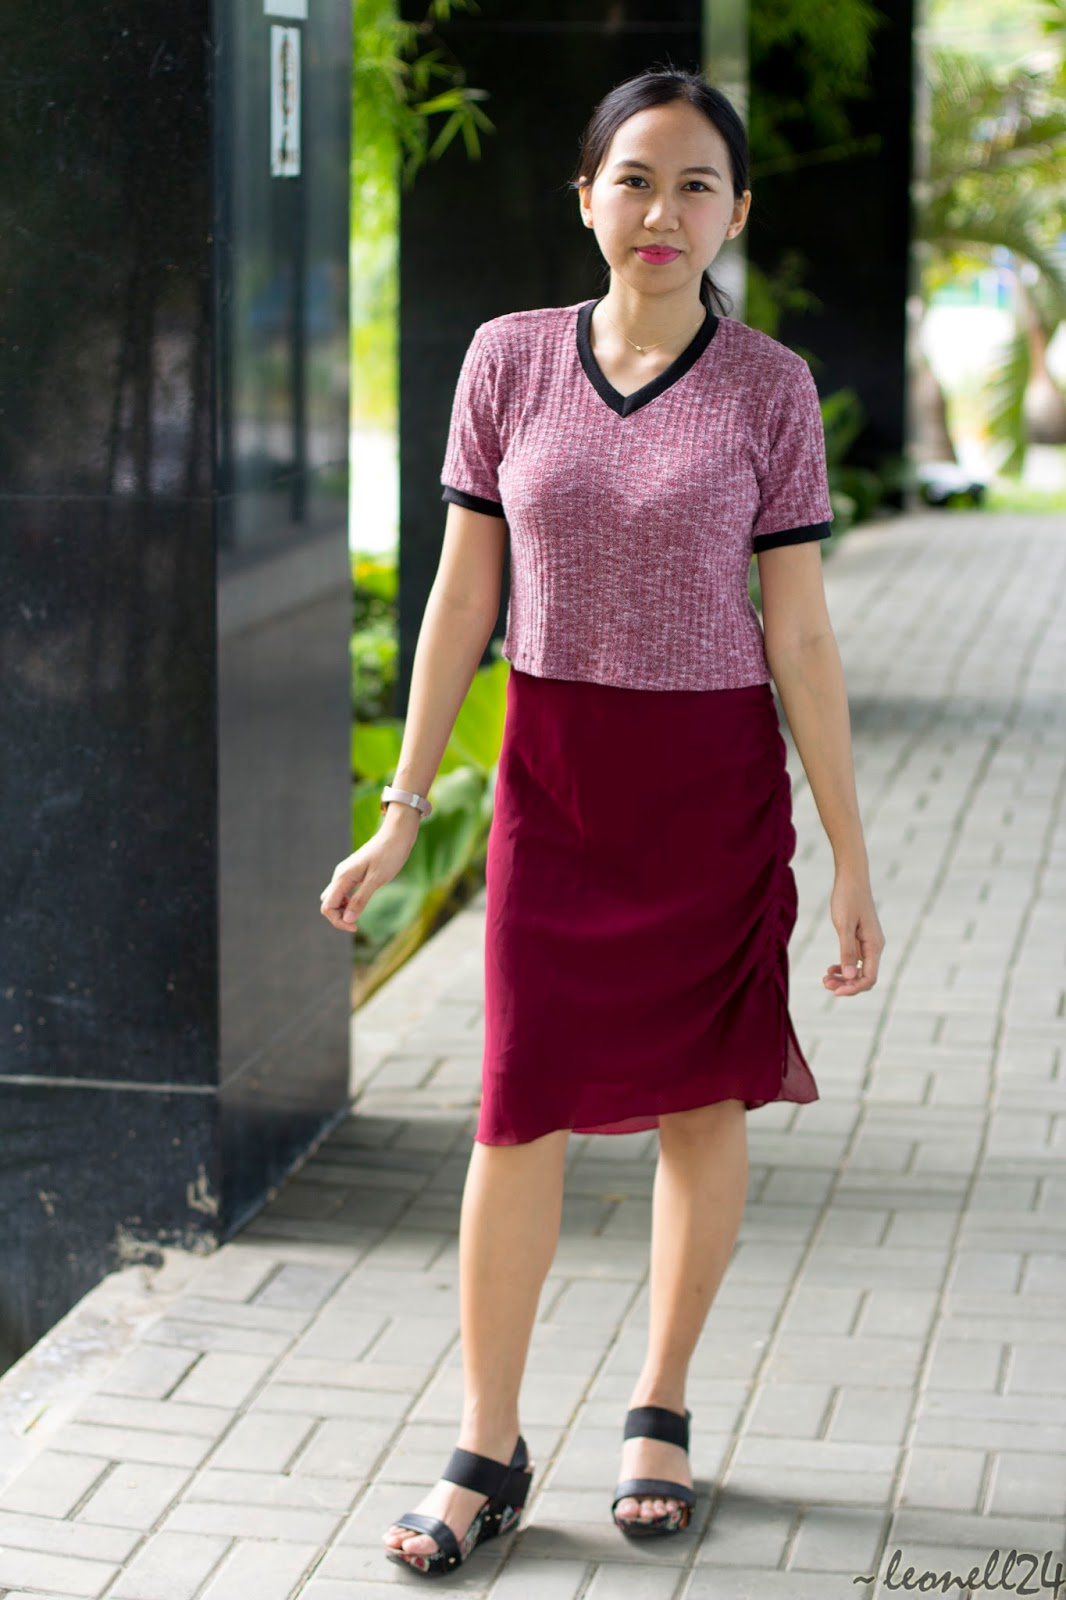 styling a pencil skirt